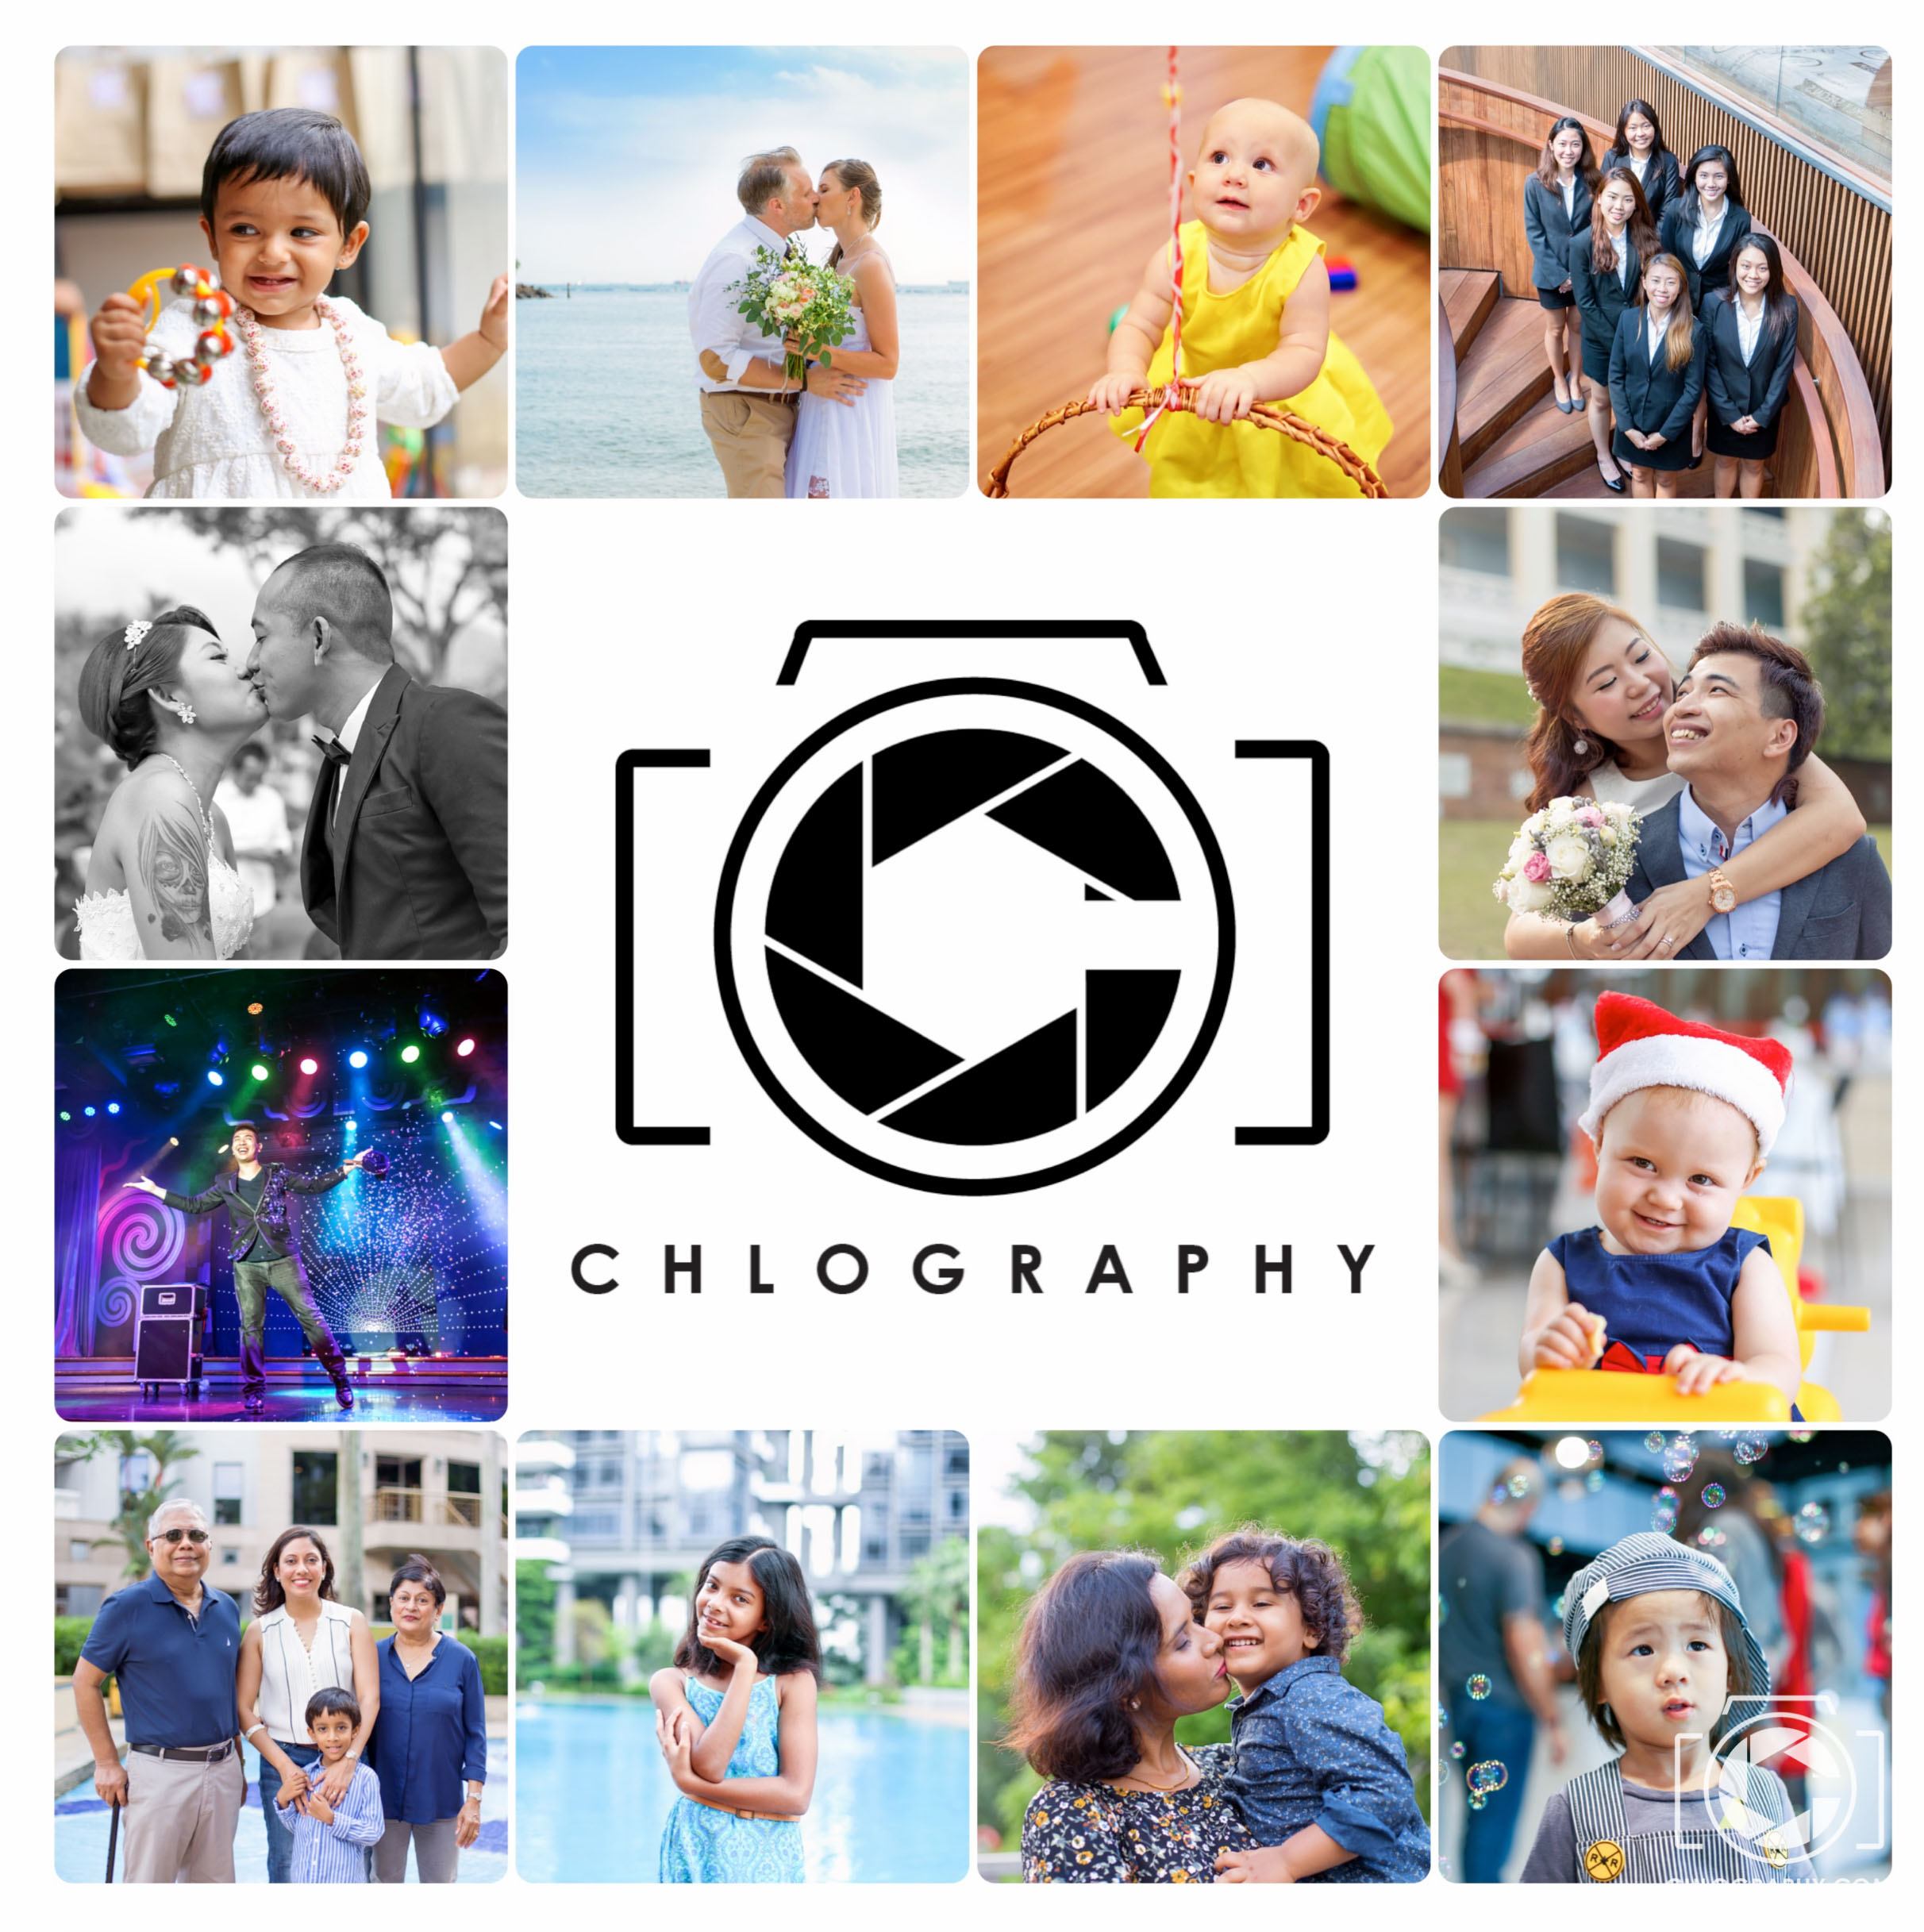 Chlography Photography Services (Wedding/Birthday/Events..)